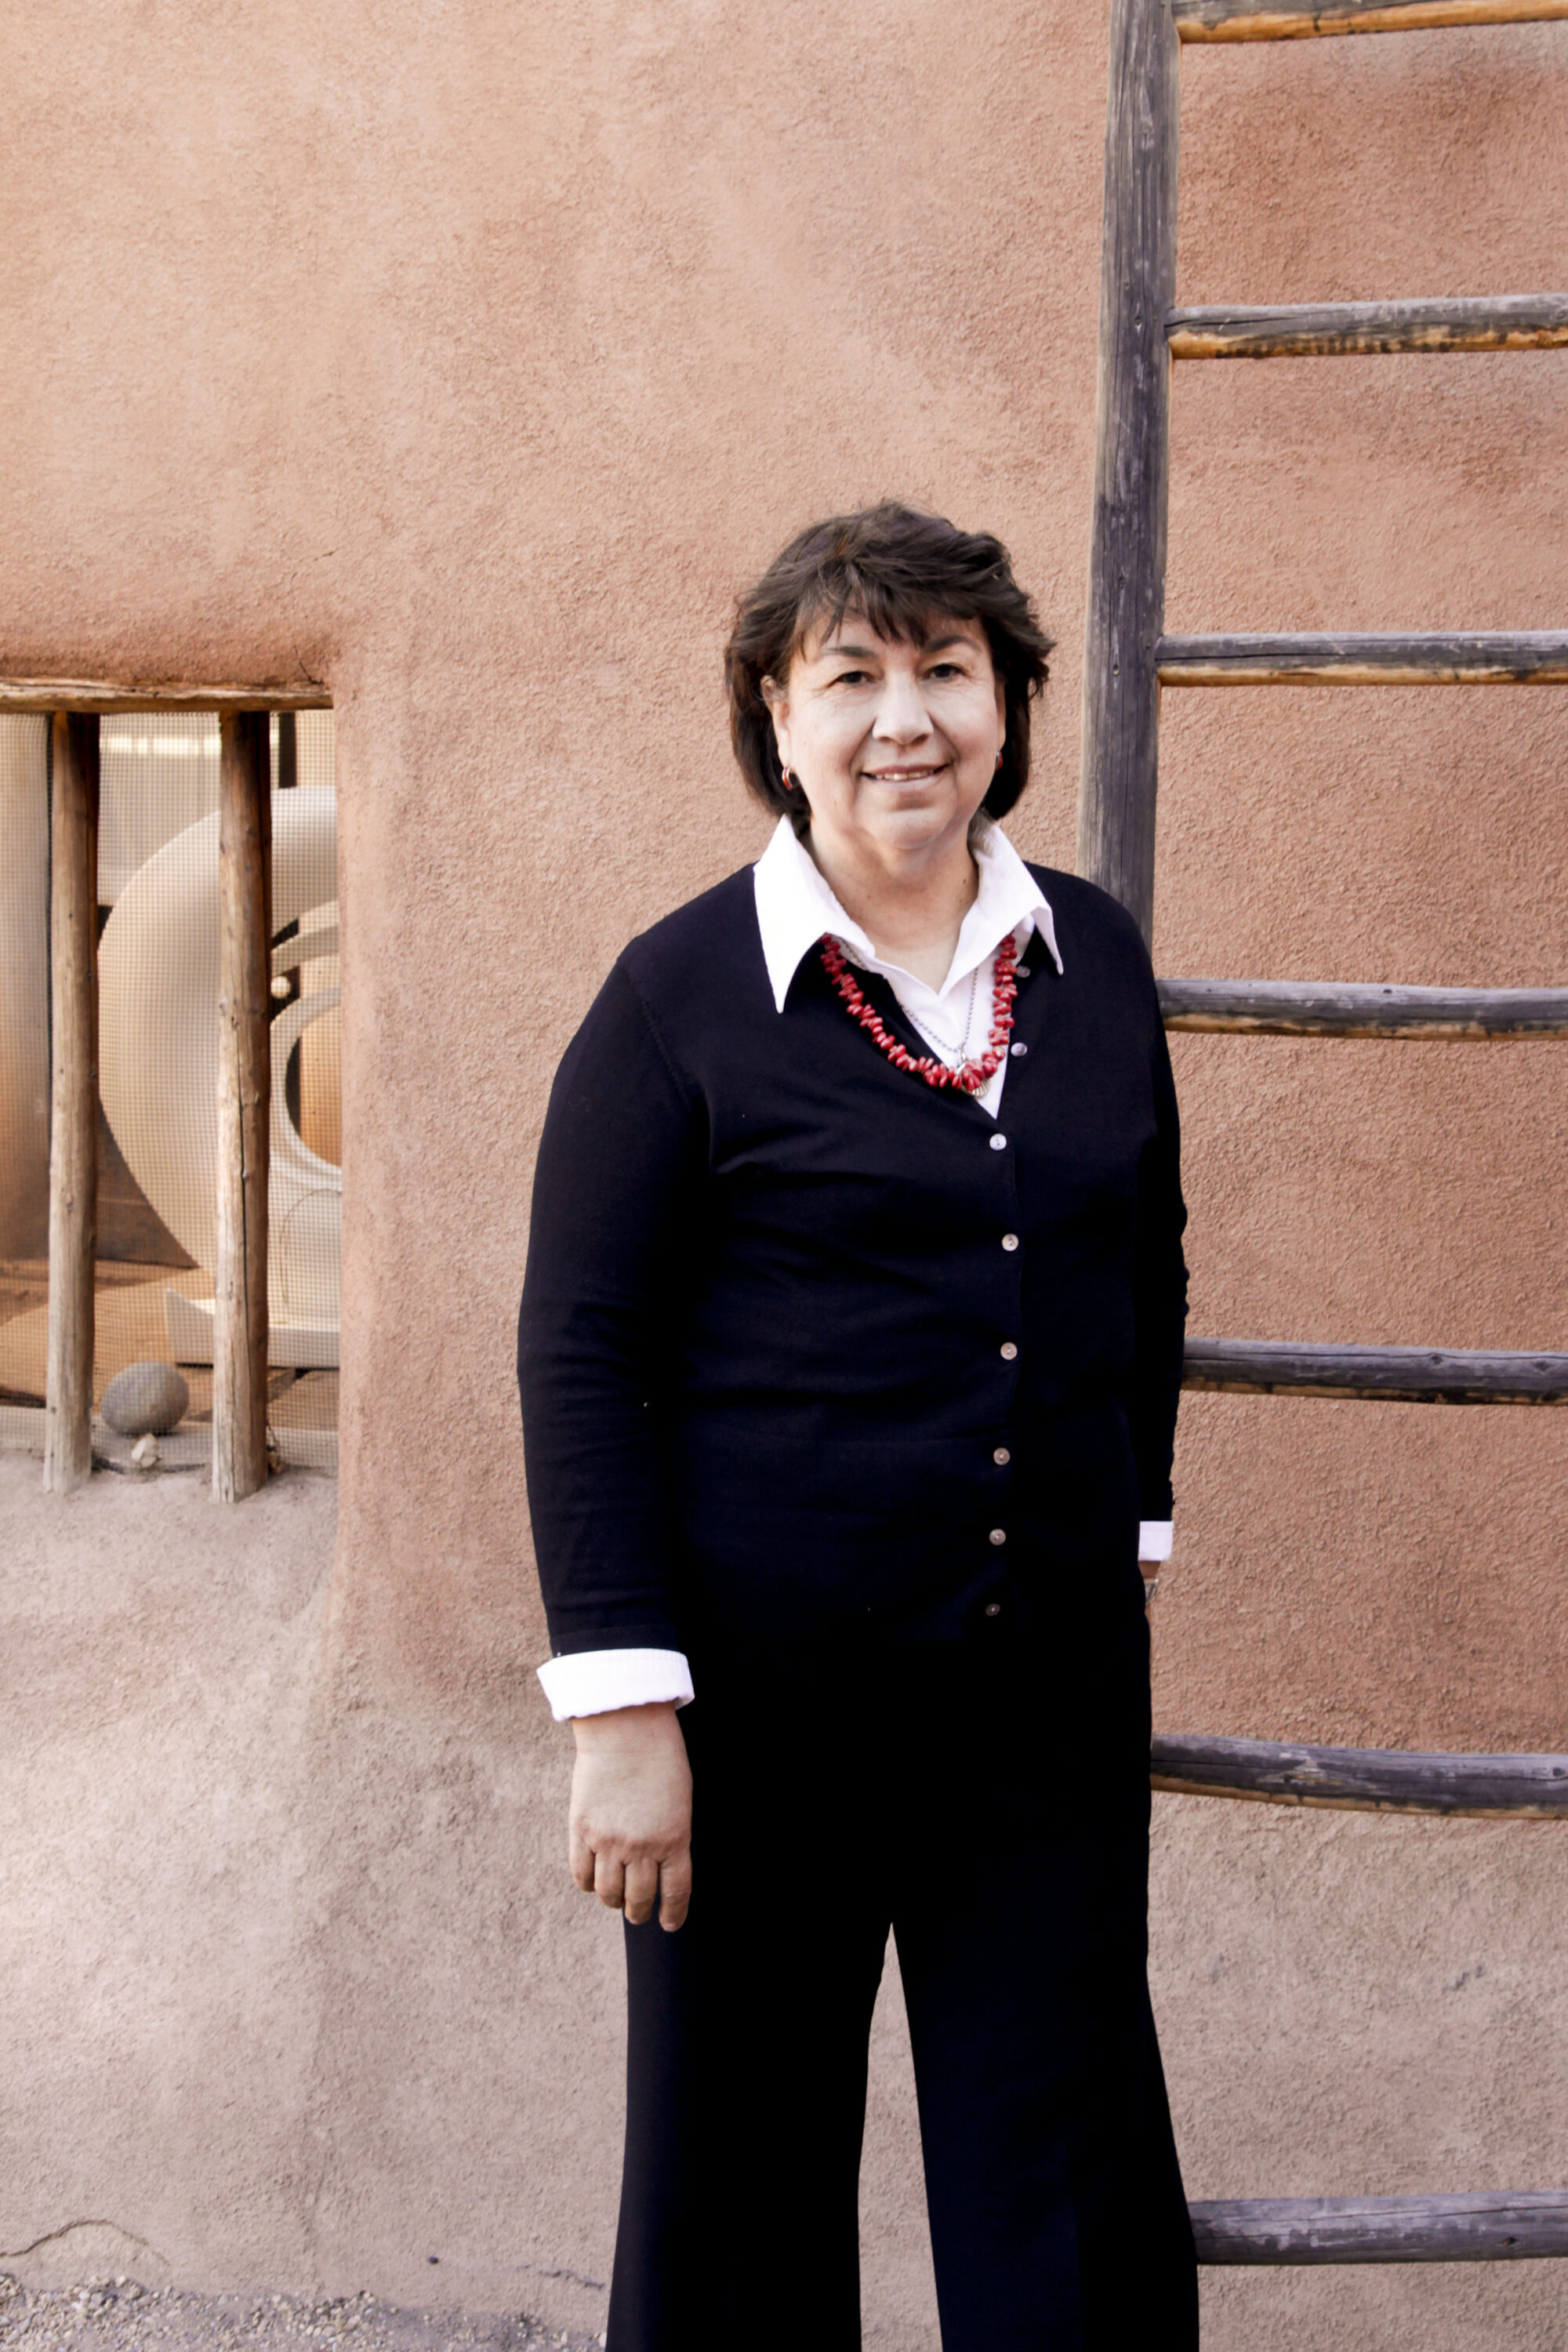 A light skinned woman with short brown hair wearing a black sweater, black pants, a white collared shirt, and a coral necklace, stands smiling in front of a ladder resting against a light pink stucco building. You can see a round white sculpture sitting on a table through the window of the building.